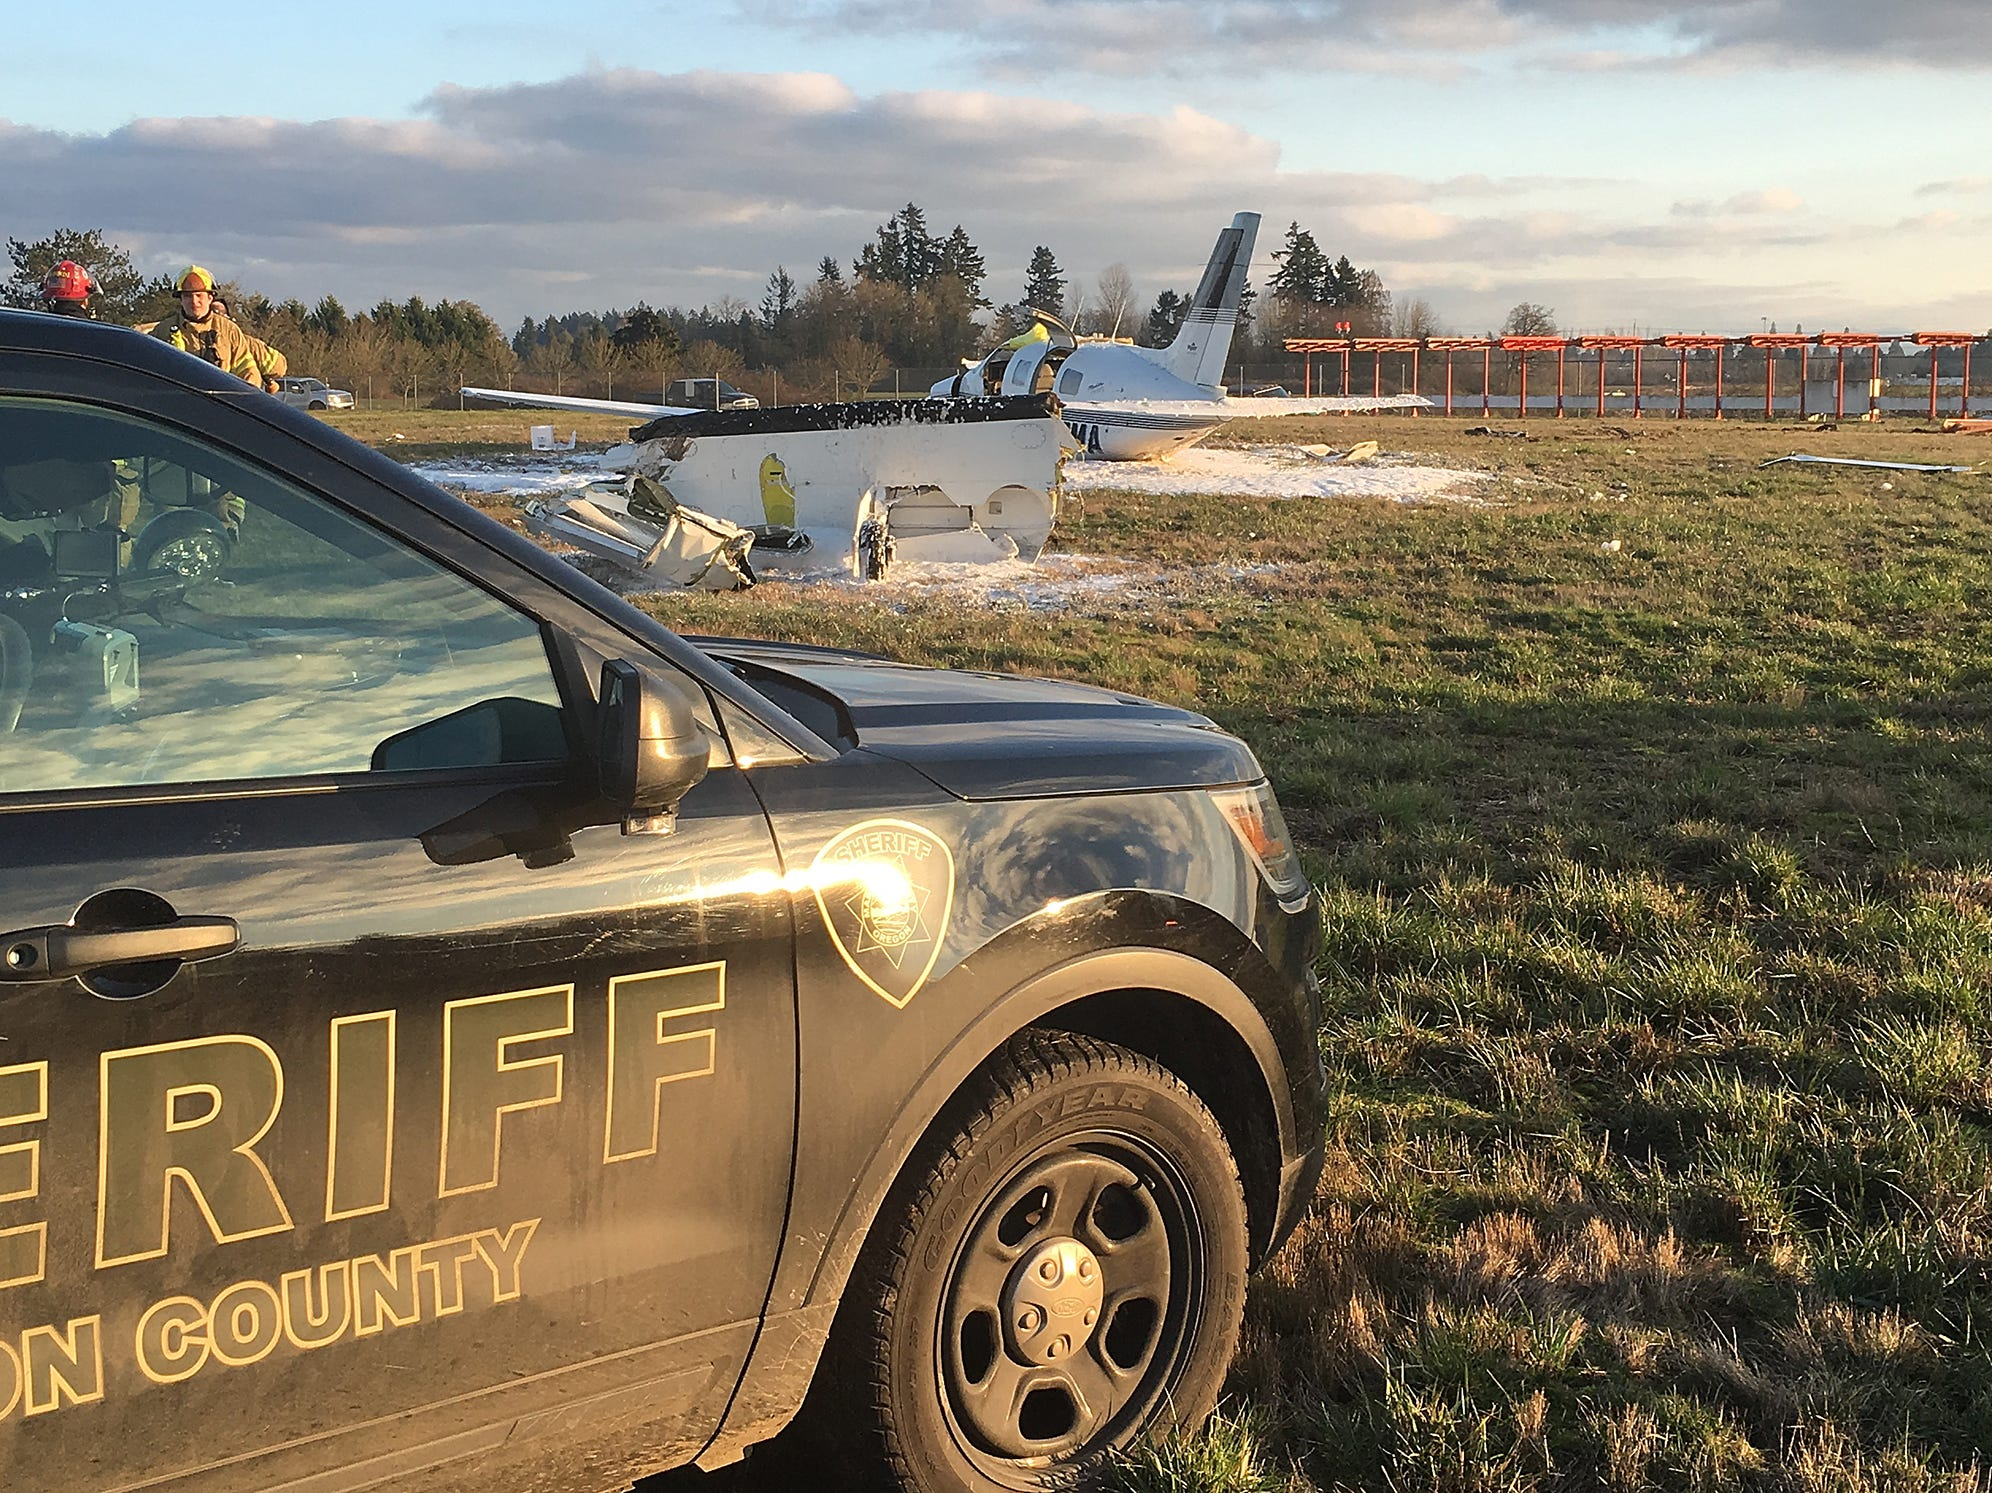 Deputies with the Marion County Sheriff's Office were called to the scene of a plane crash at the Aurora Airport.